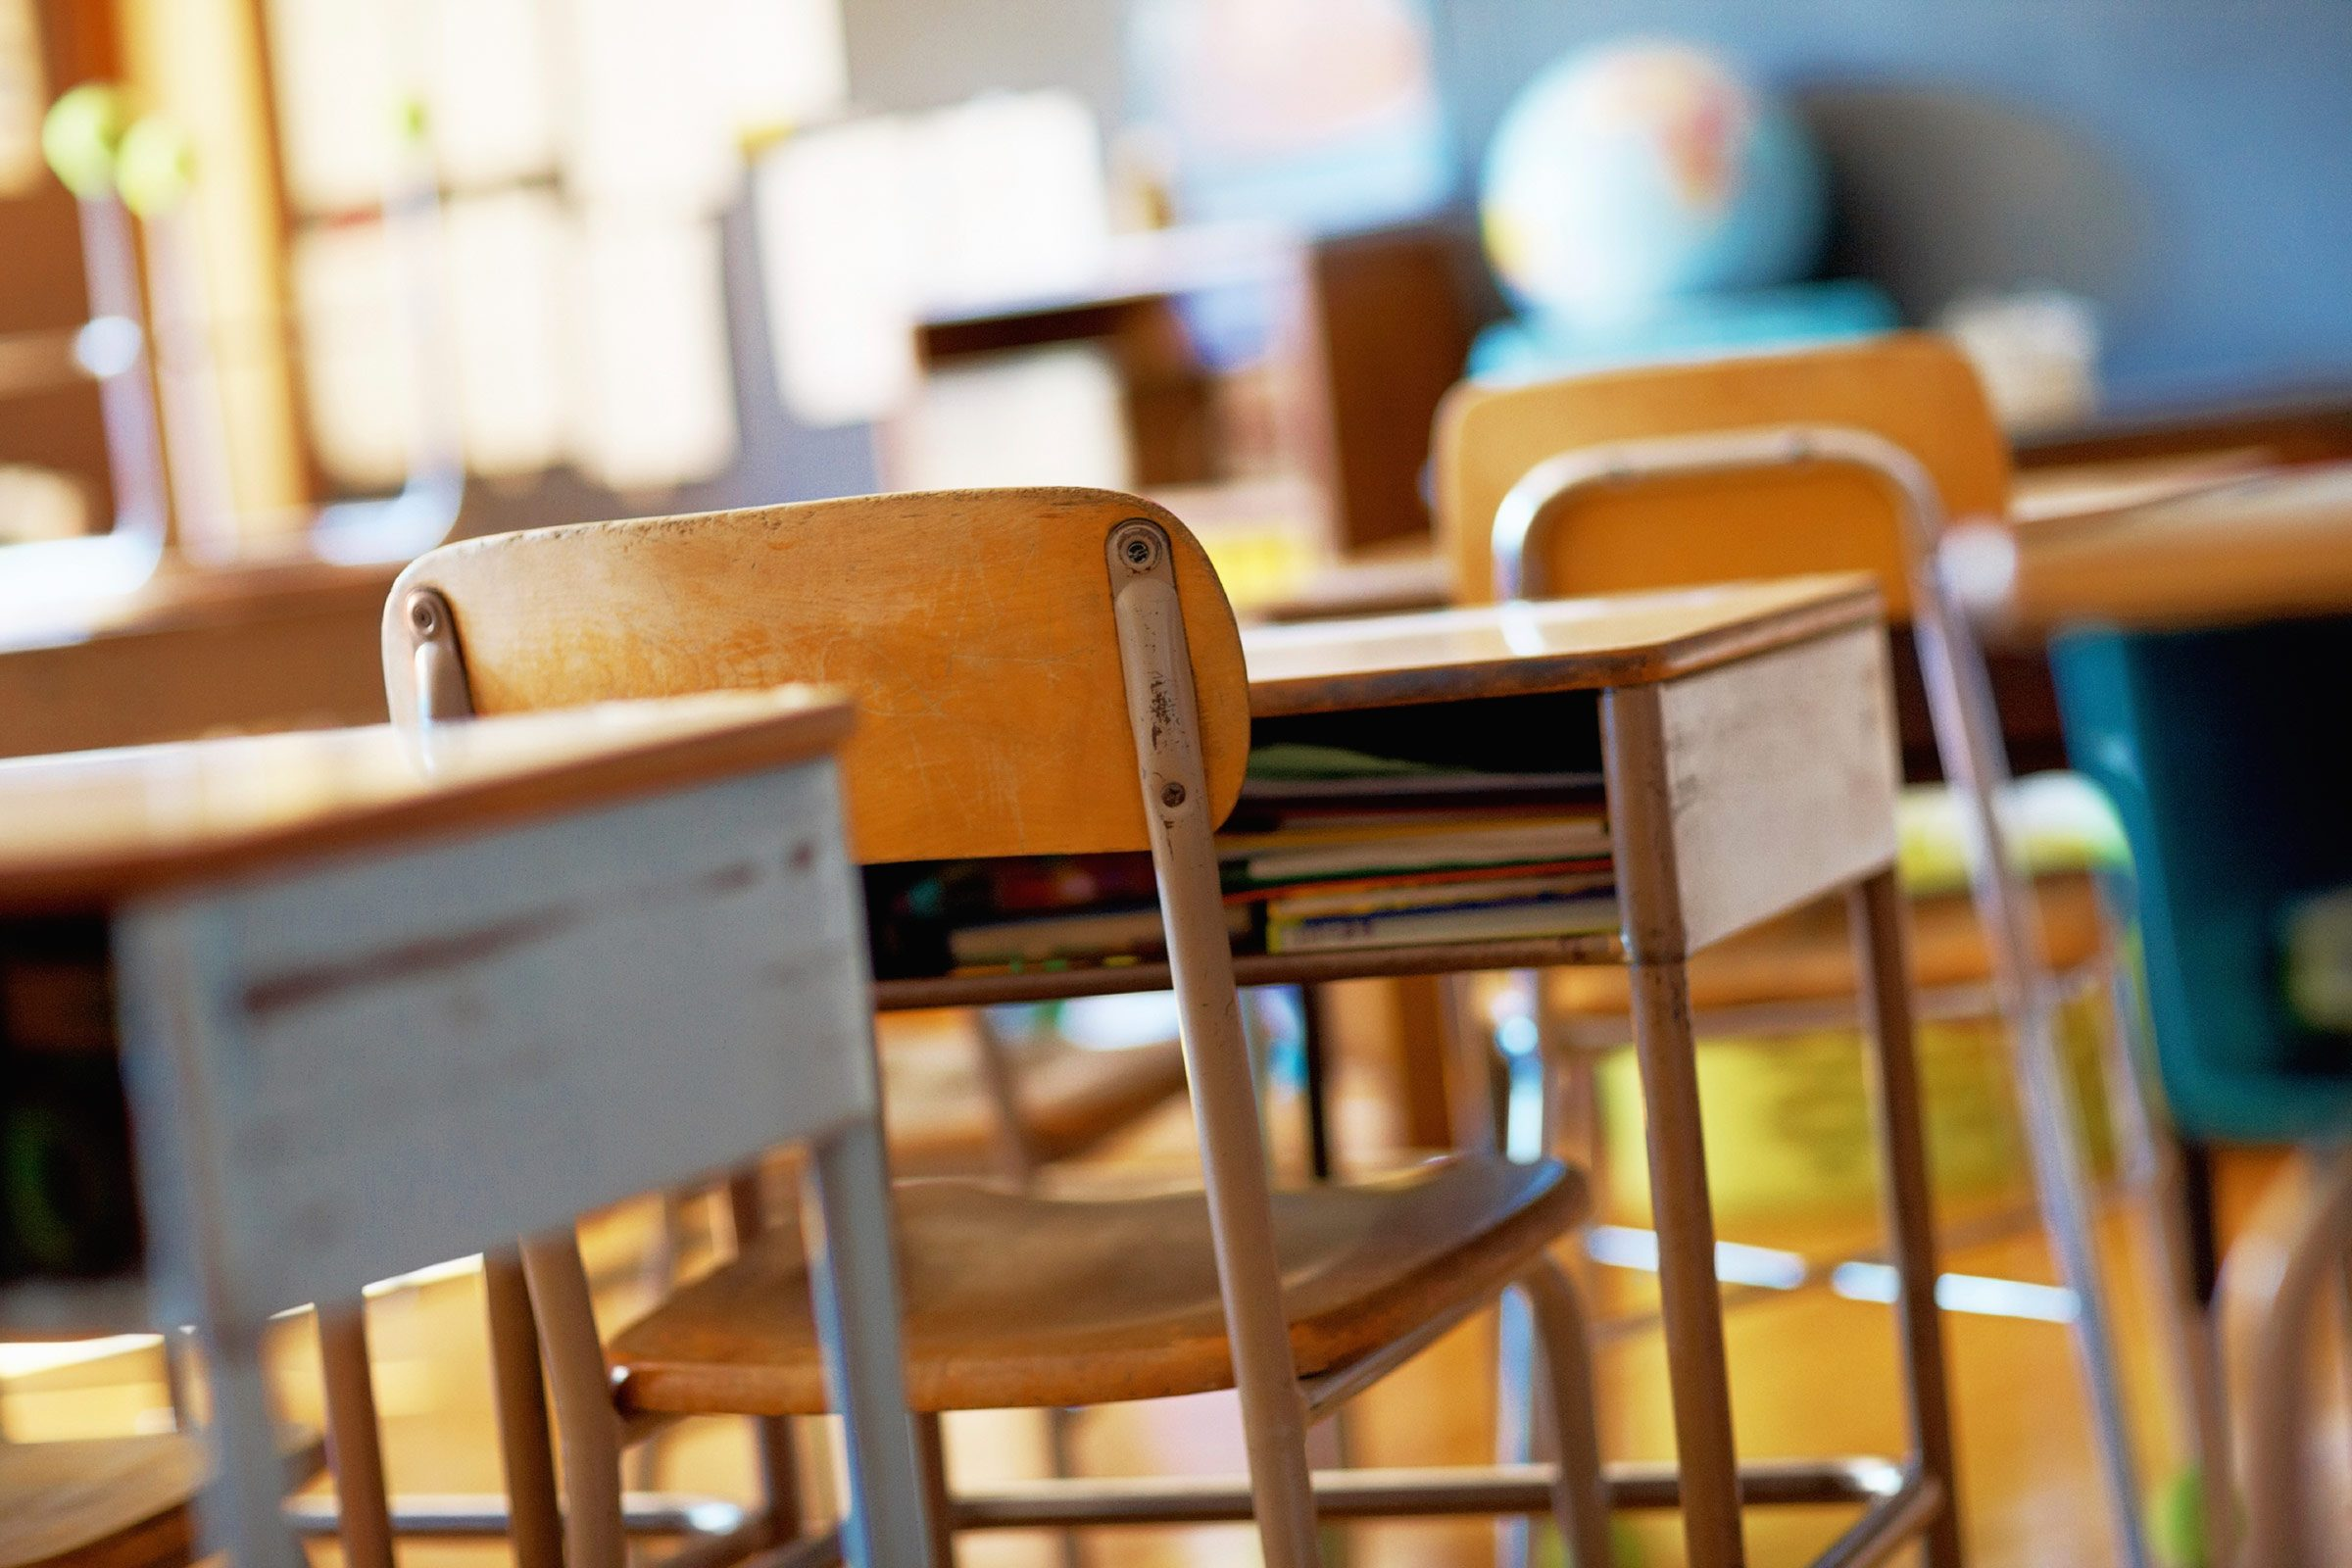 My first year of teaching, a fifth-grader actually threw a chair at me